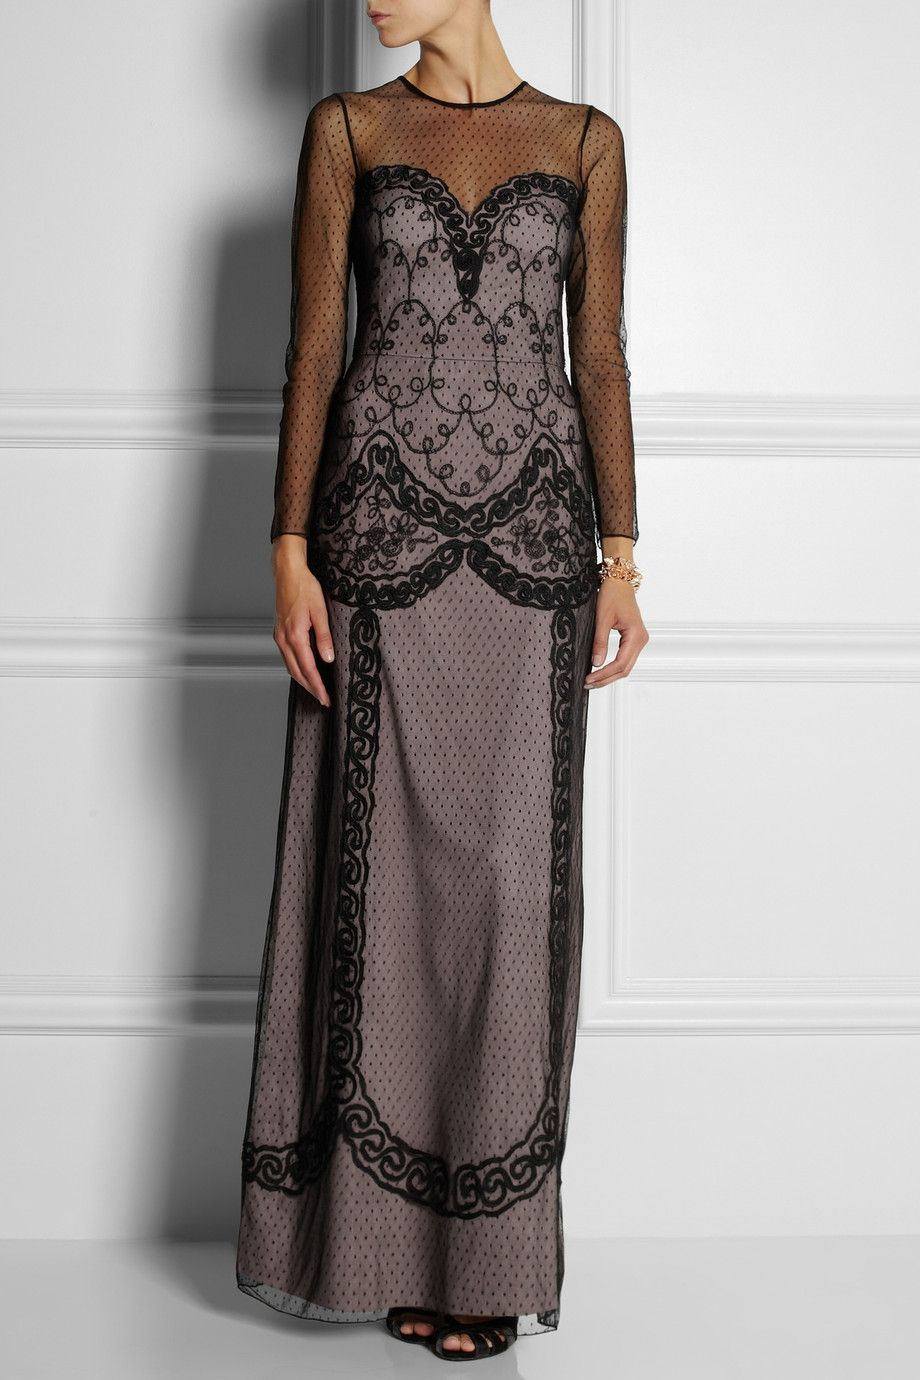 ALICE by Temperley | Luisa embroidered tulle dress